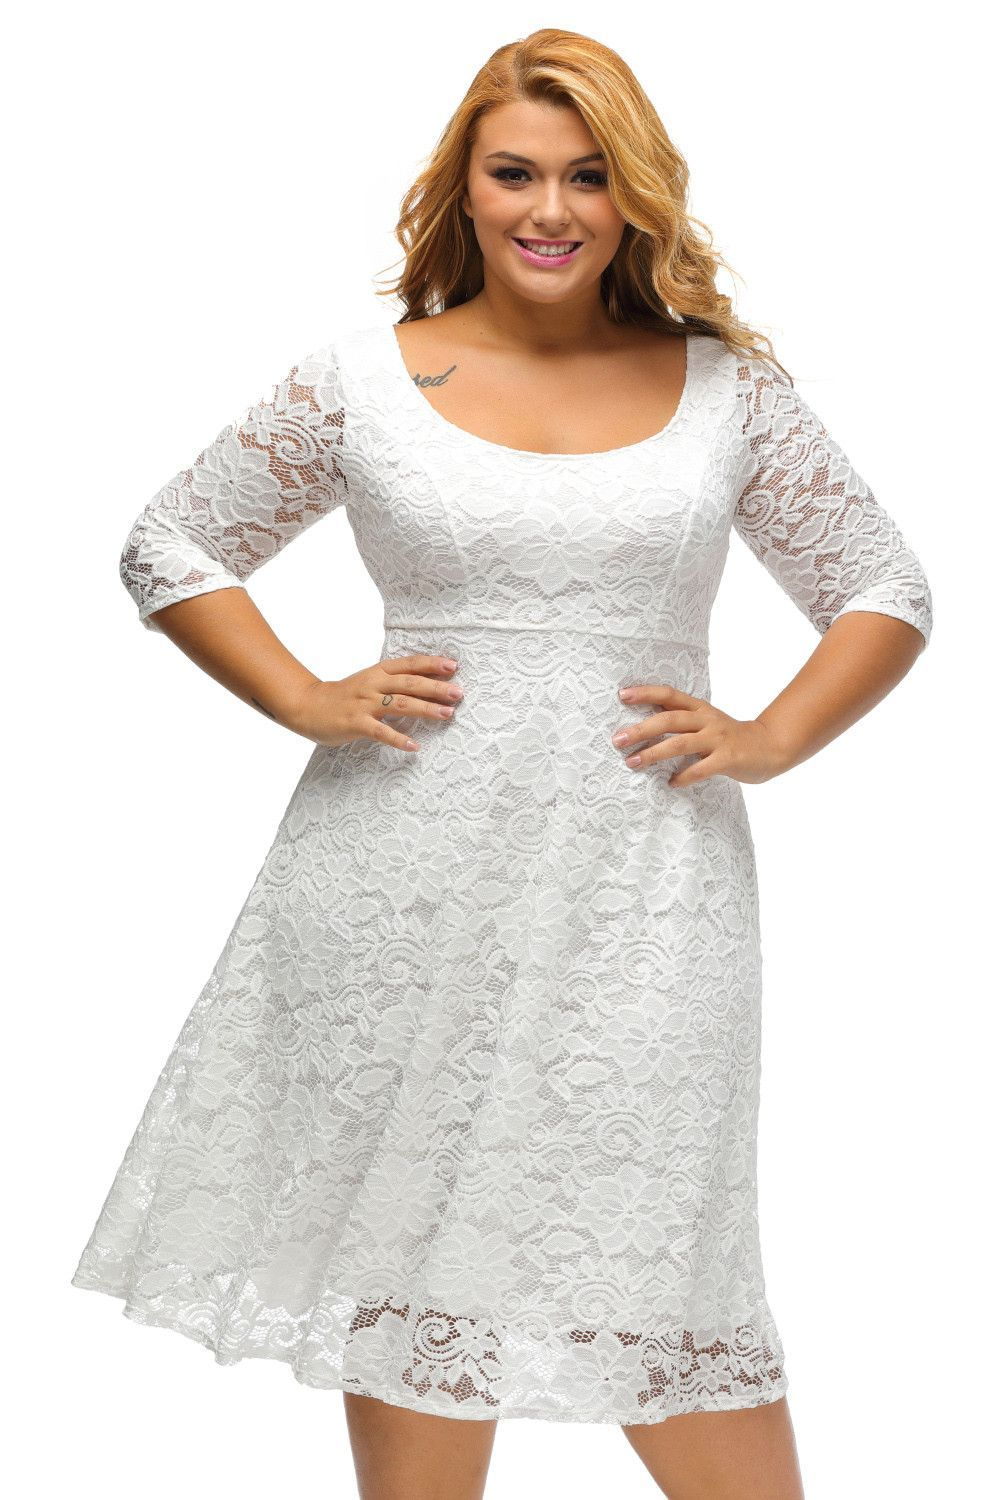 c8a5381e75c Prix  €21.99 Robe Blanche Dentelle Grandes Taille Fleur Confort Chic Pas  Cher www.modebuy.com  Modebuy  Modebuy  Blanc  femme  me  style